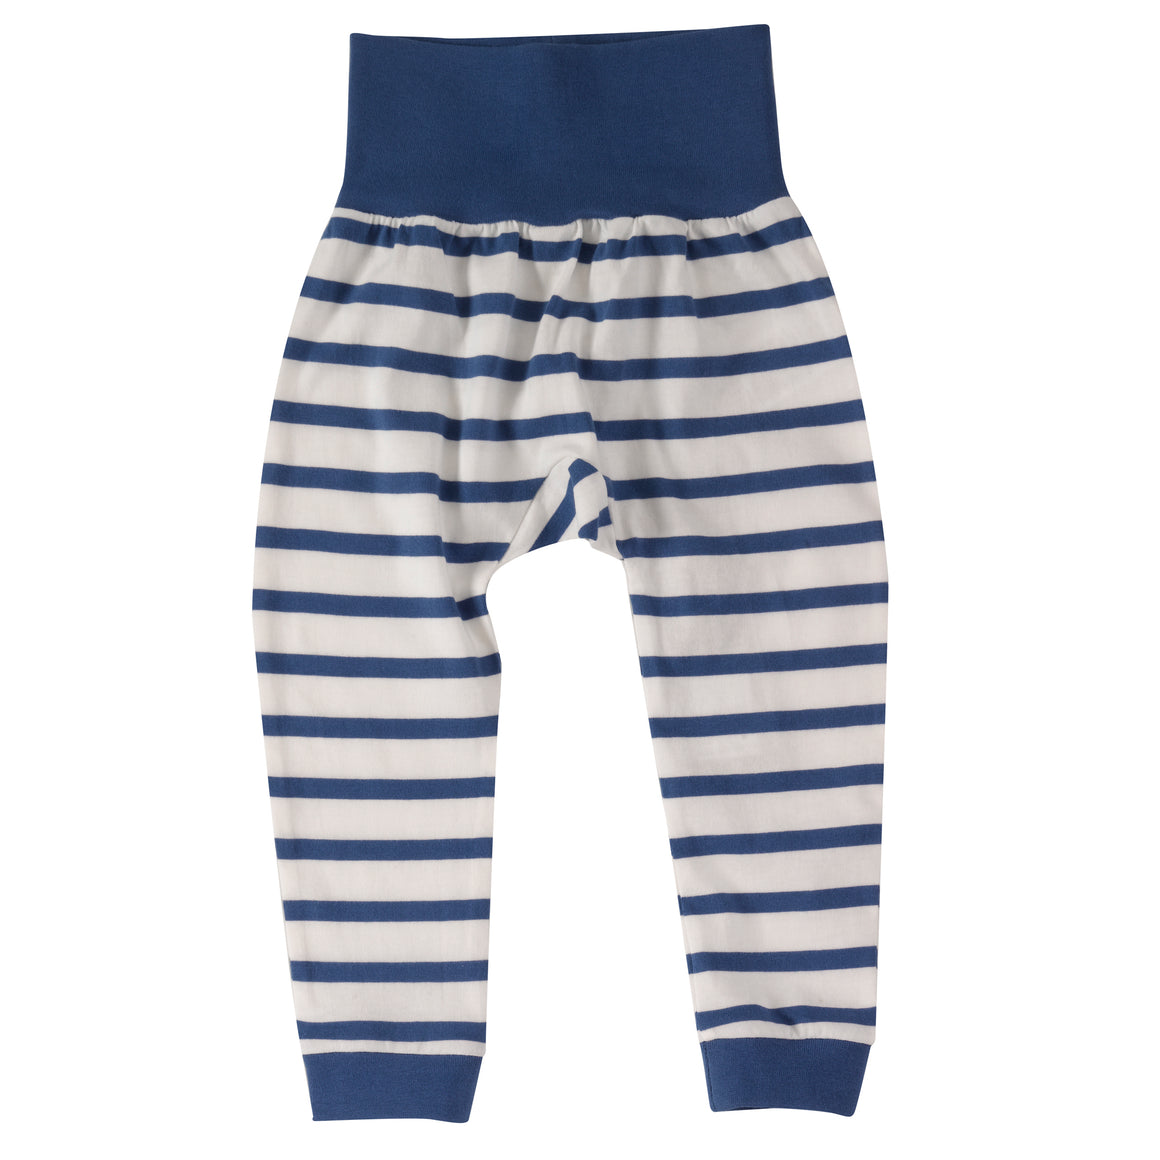 Baby Joggers in Delft Blue stripe